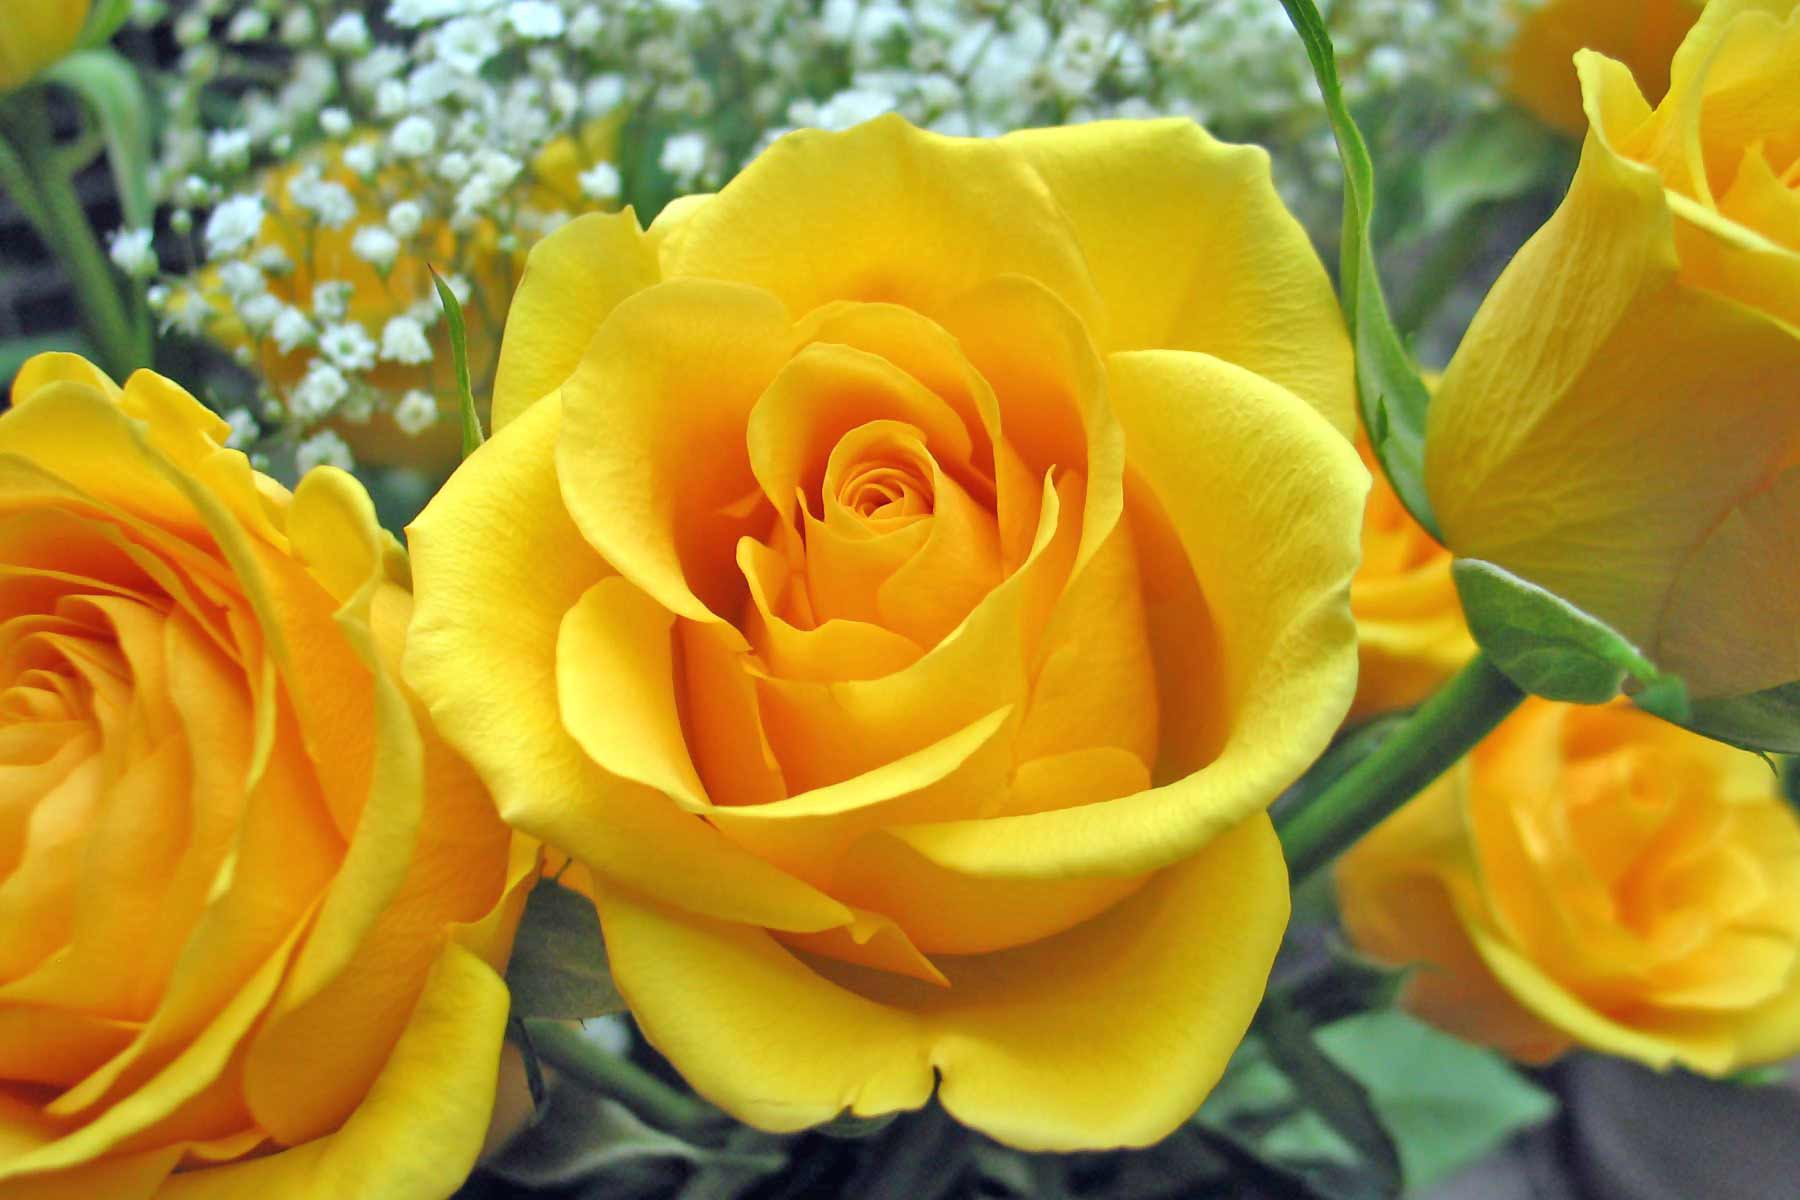 Awesome Yellow Roses Image for Fb Share